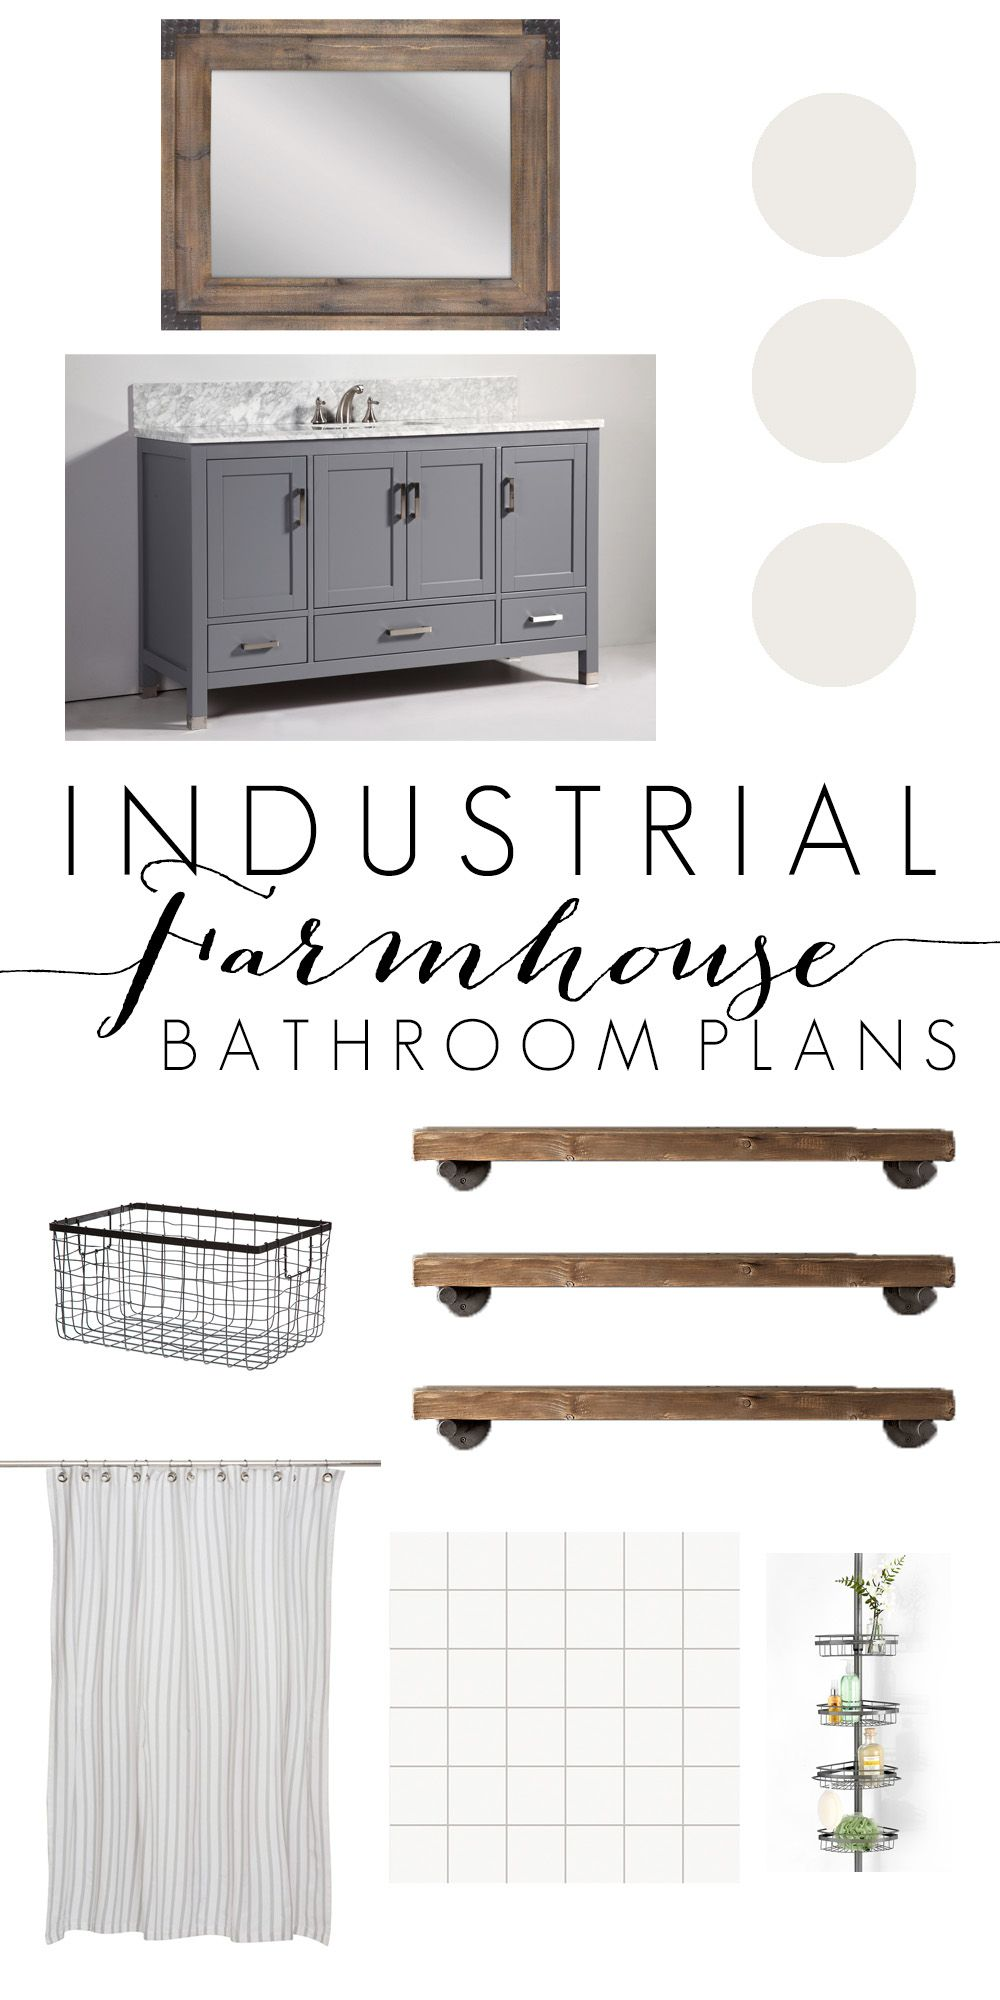 Industrial Farmhouse Bathroom Inspiration - Cherished Bliss #industrialfarmhouse